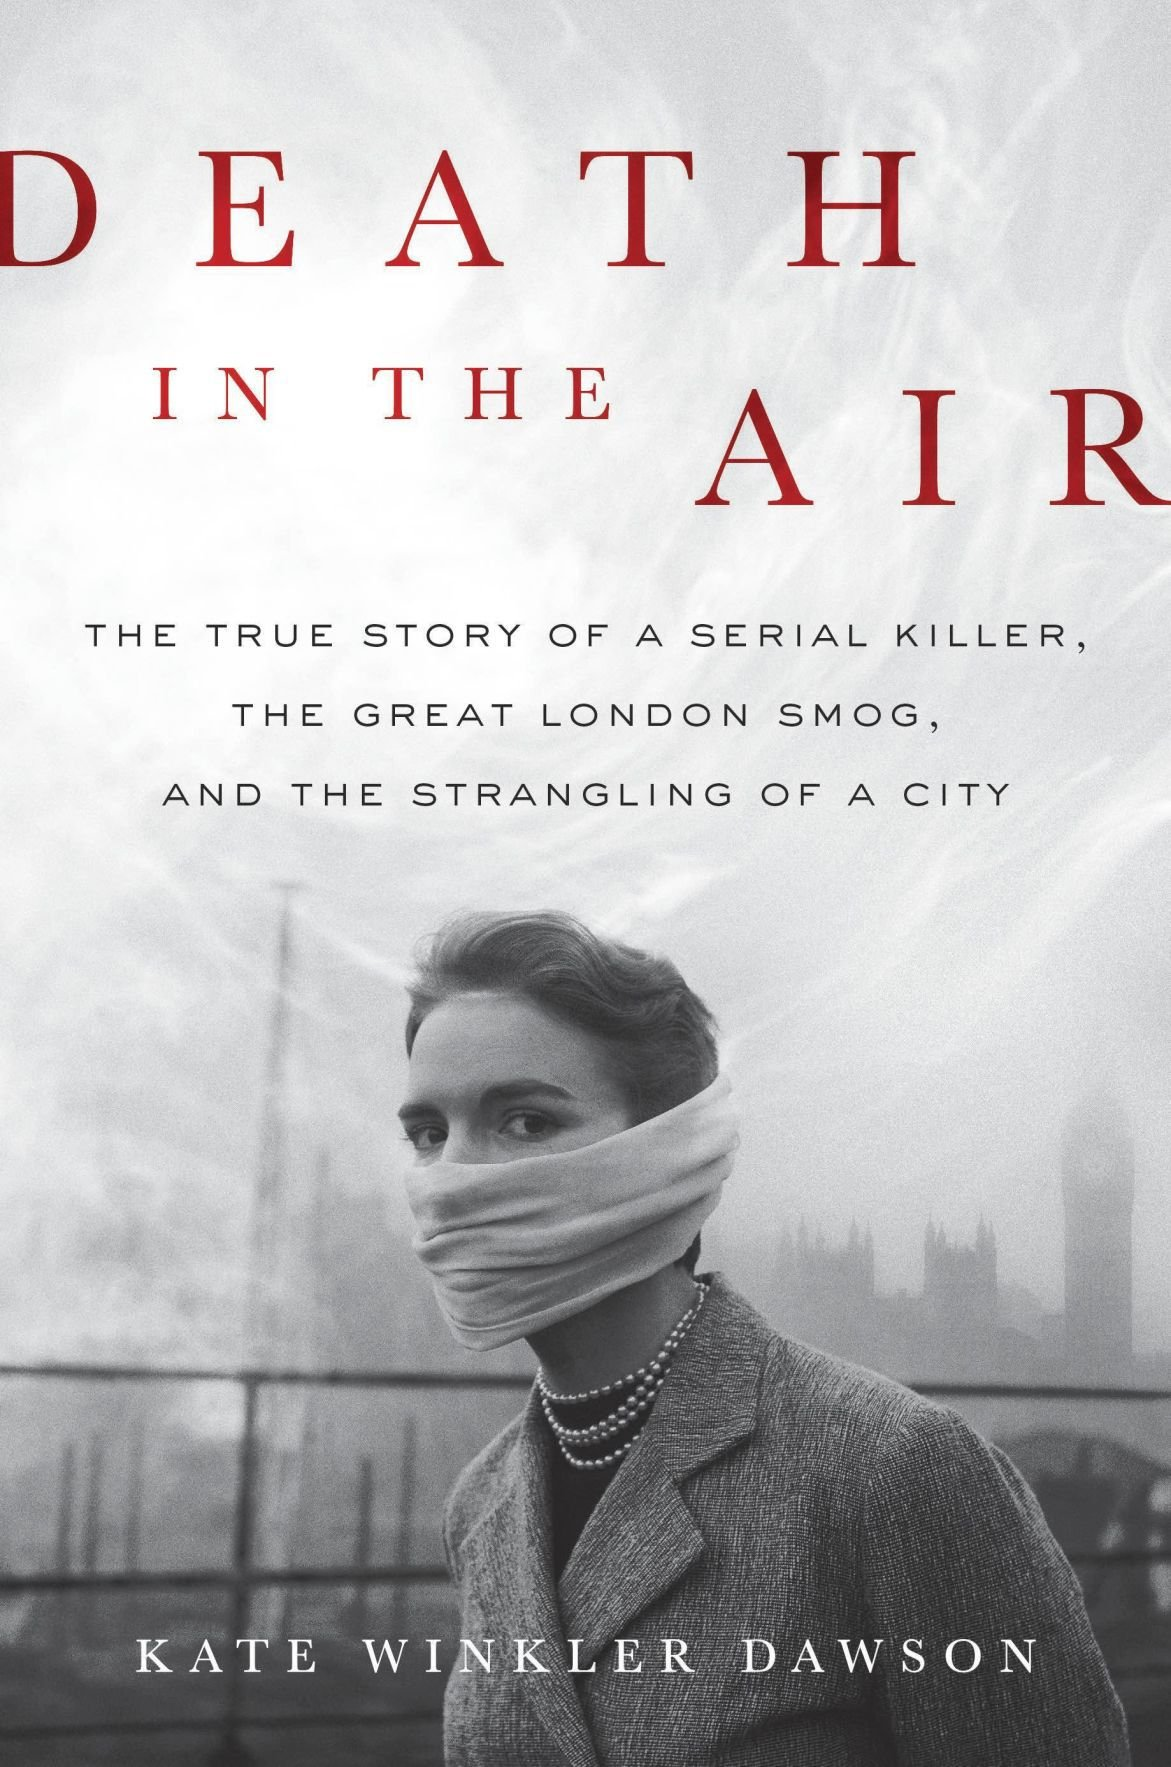 Book Review - Death In The Air